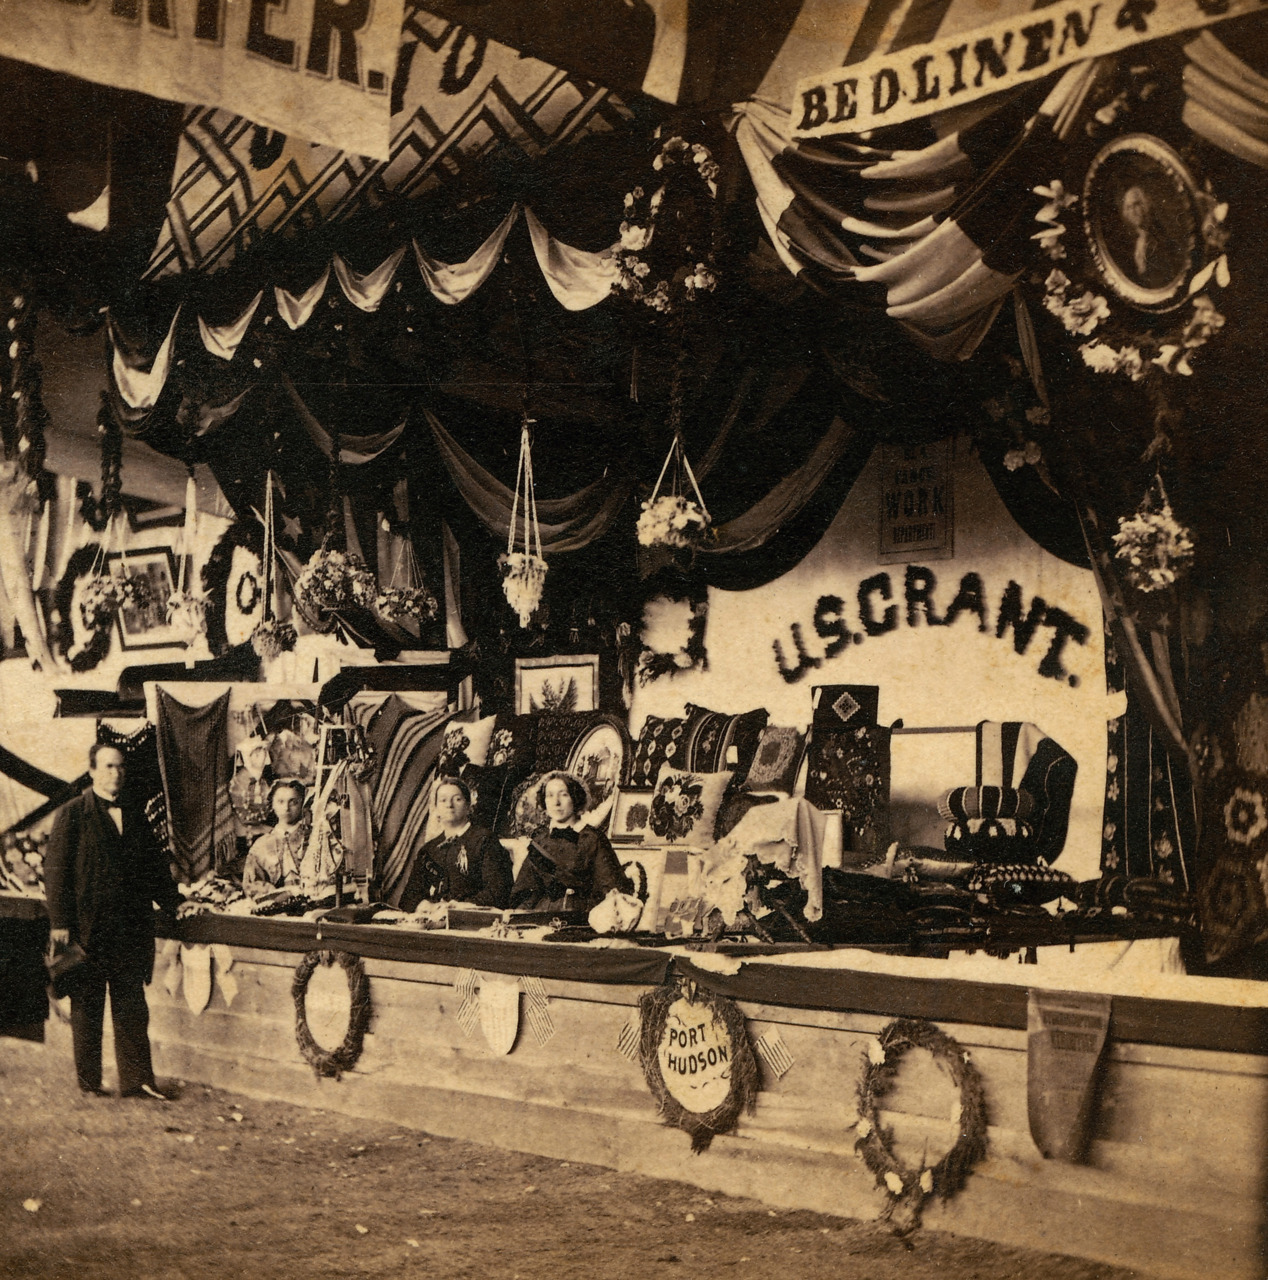 A scene at the Grand Mississippi Valley Sanitary Fair, held from May 17 to June 18, 1864, in St. Louis to raise money for assisting Union troops, their families and freed slaves. A temporary building was erected for the fair in the middle of 12th Street (now Tucker Boulevard) on the two blocks north of Olive Street. It had 54 booths that sold food, clothing, needlework and Missouri-made wine and beer. Many members of the Ladies' Union Aid Society members wanted to ban beer, but relented in a nod to the many pro-Union and pro-beer German immigrants in St. Louis. This booth was named for Gen. Ulysses S. Grant, who had lived for a time in St. Louis and was, at the time of the Sanitary Fair, leading a series of bloody battles in Virginia against the Confederate army of Gen. Robert E. Lee. (Missouri History Museum) See more photos from the fair »